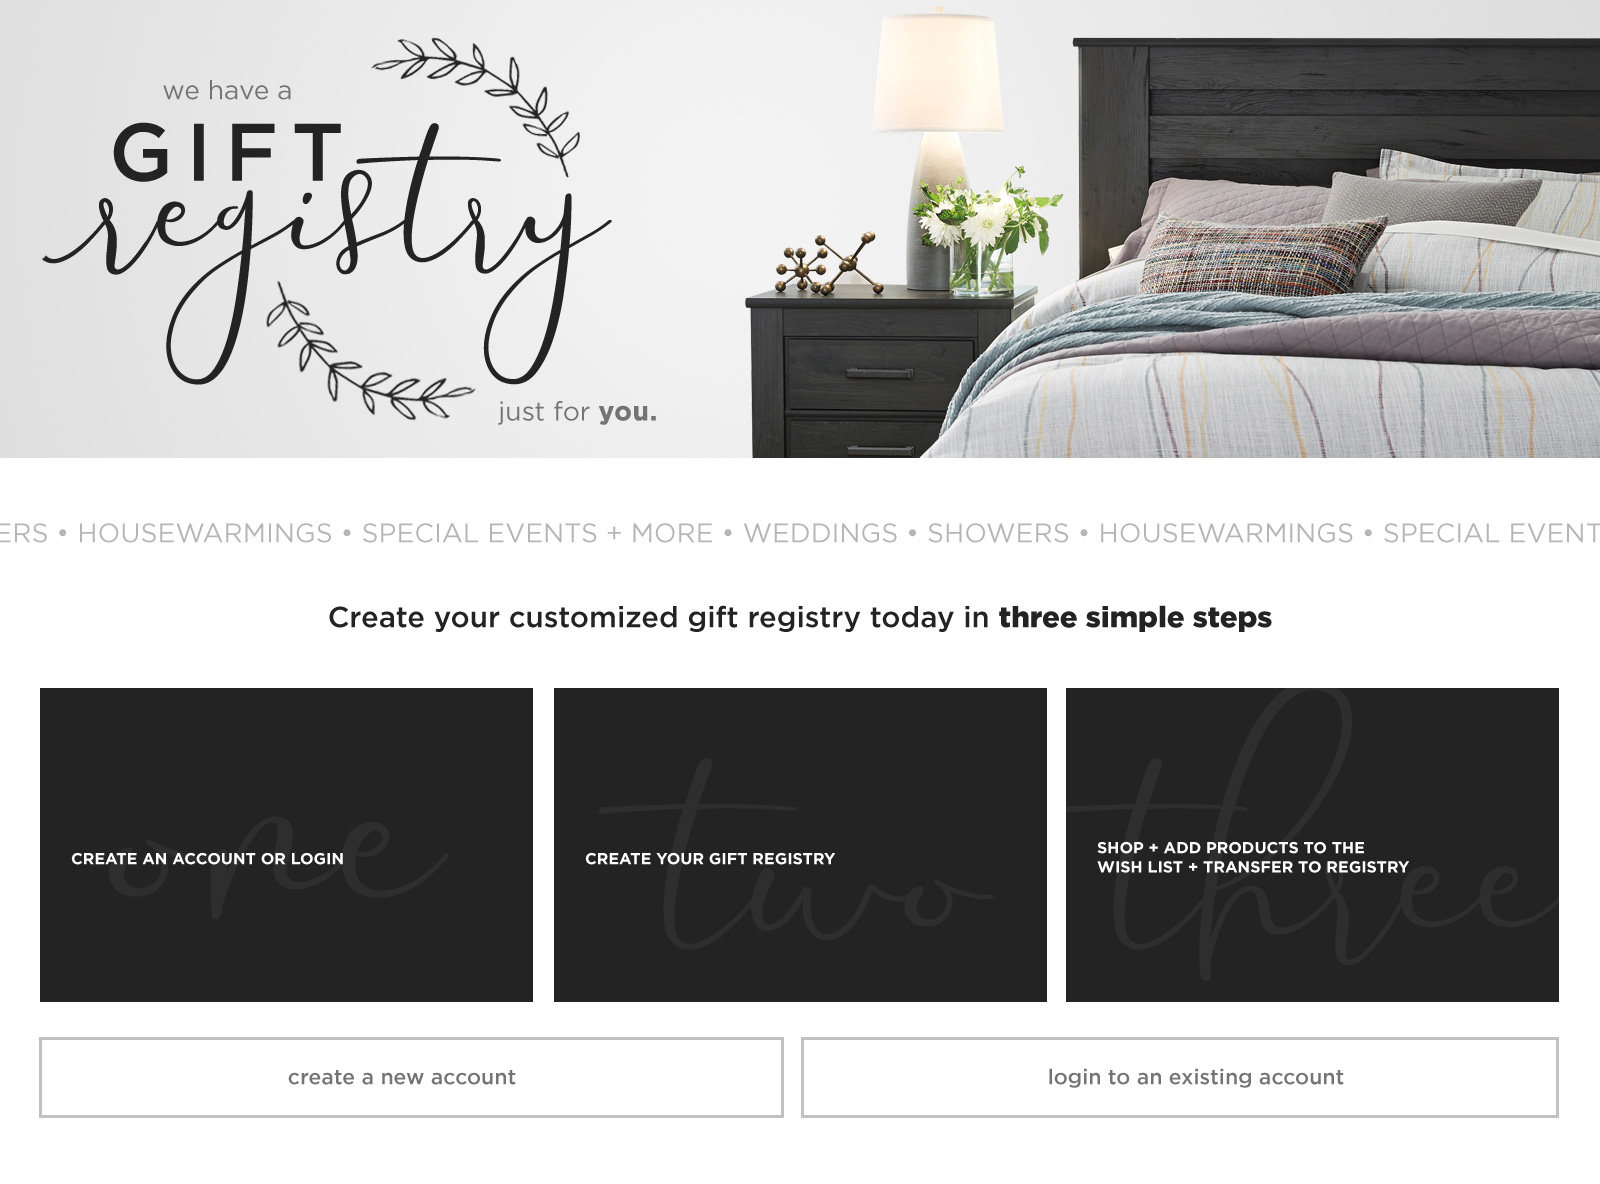 Wedding Gift Registry at City Living Furniture